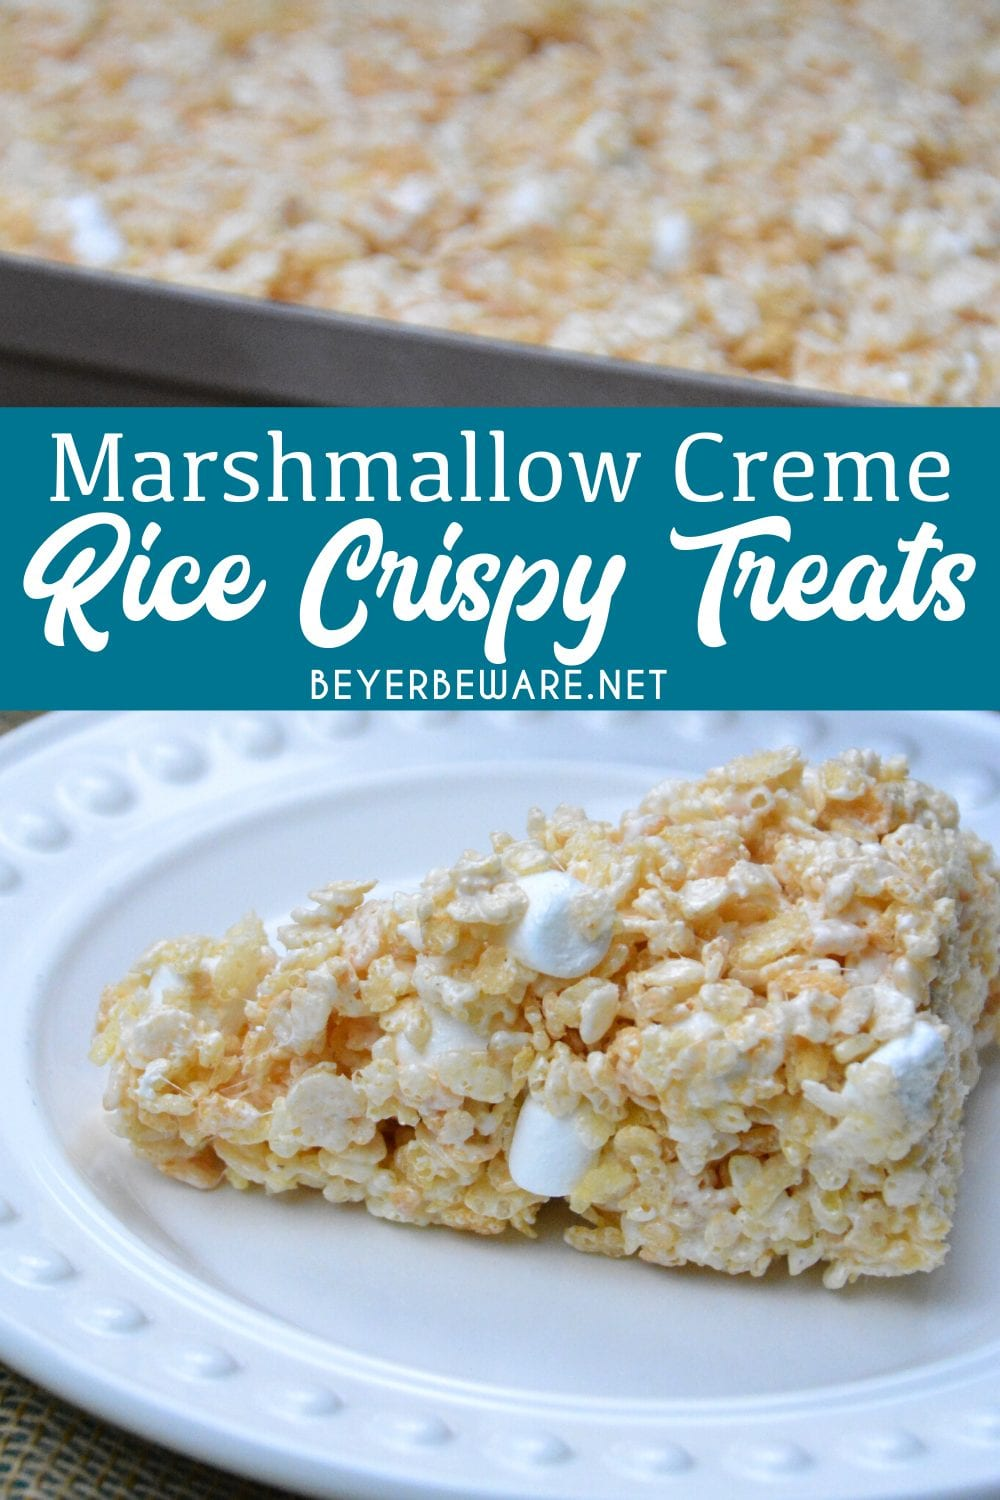 Marshmallow creme rice crispy treats are the no-bake, gluten-free dessert every child loves and is so easy to make with marshmallow fluff, butter, marshmallows, and Rice Krispies. #Recipes #RiceKrispies #Dessert #GlutenFree #RiceKrispiesTreats #Marshmallow